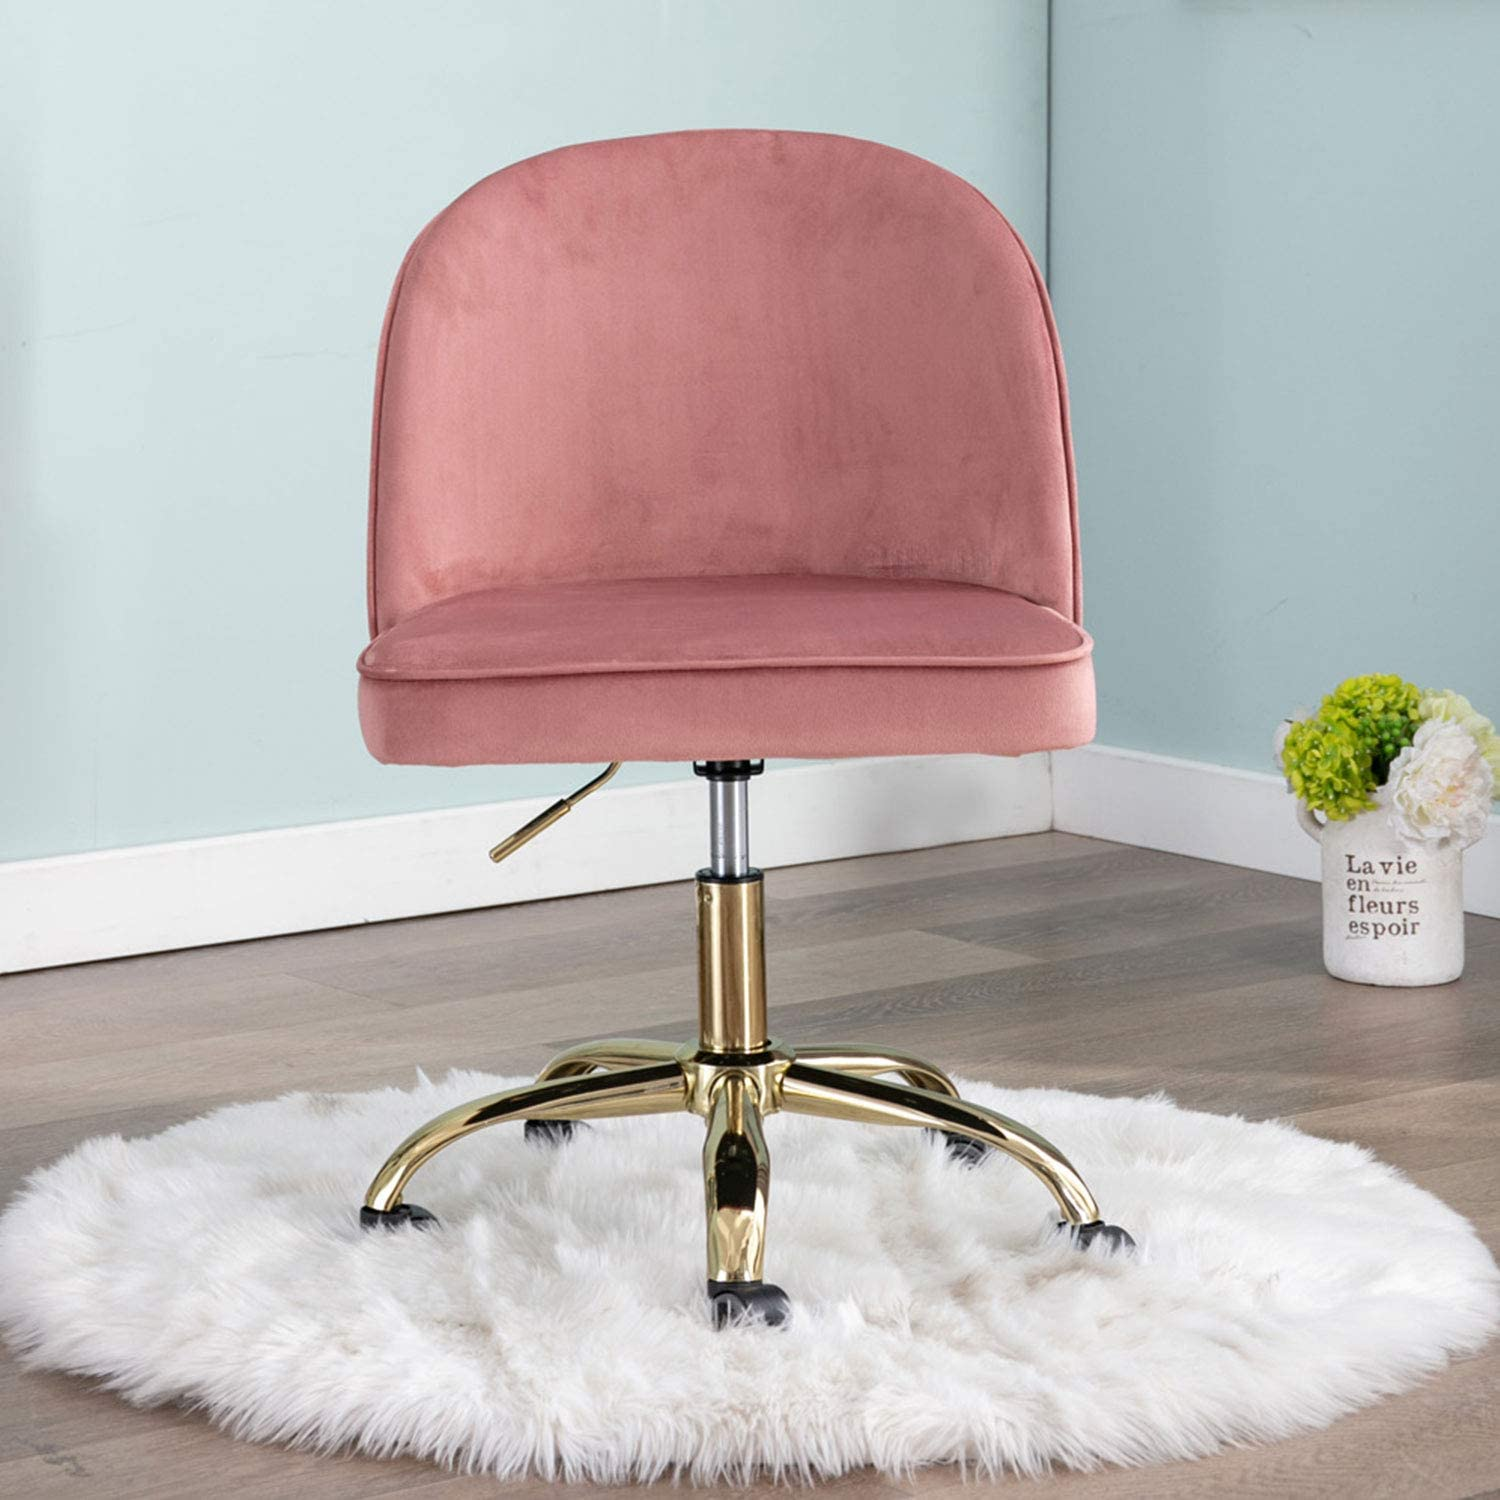 Adjustable Round Back Office Chair, Velvet Makeup Stool, Pneumatic Rolling Swivel Armless Task Chair with Gold Plating Base (Dusty Rose Pink)